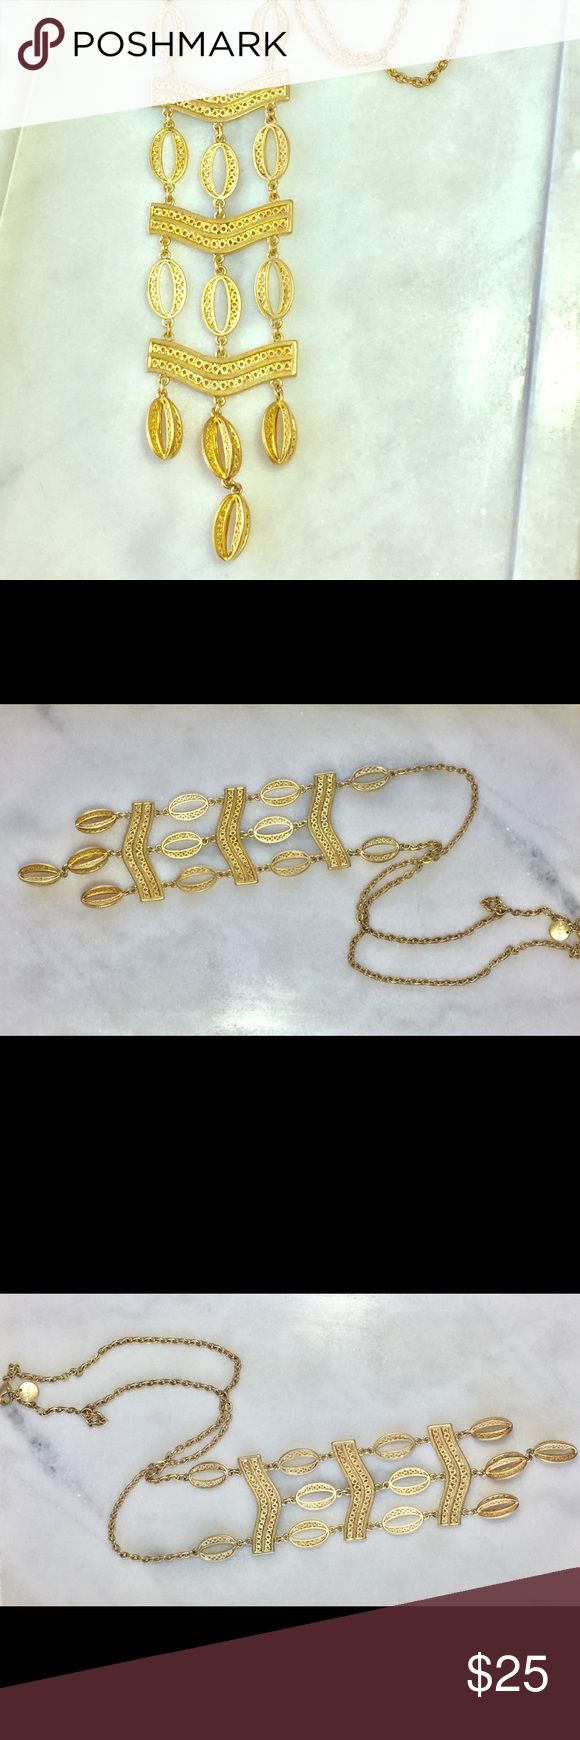 """Stella & Dot Vertical Bib Gold Oval Necklace Stunning!! Chain is 26"""" long. Bib is 6"""" long. Stella & Dot Jewelry Necklaces"""